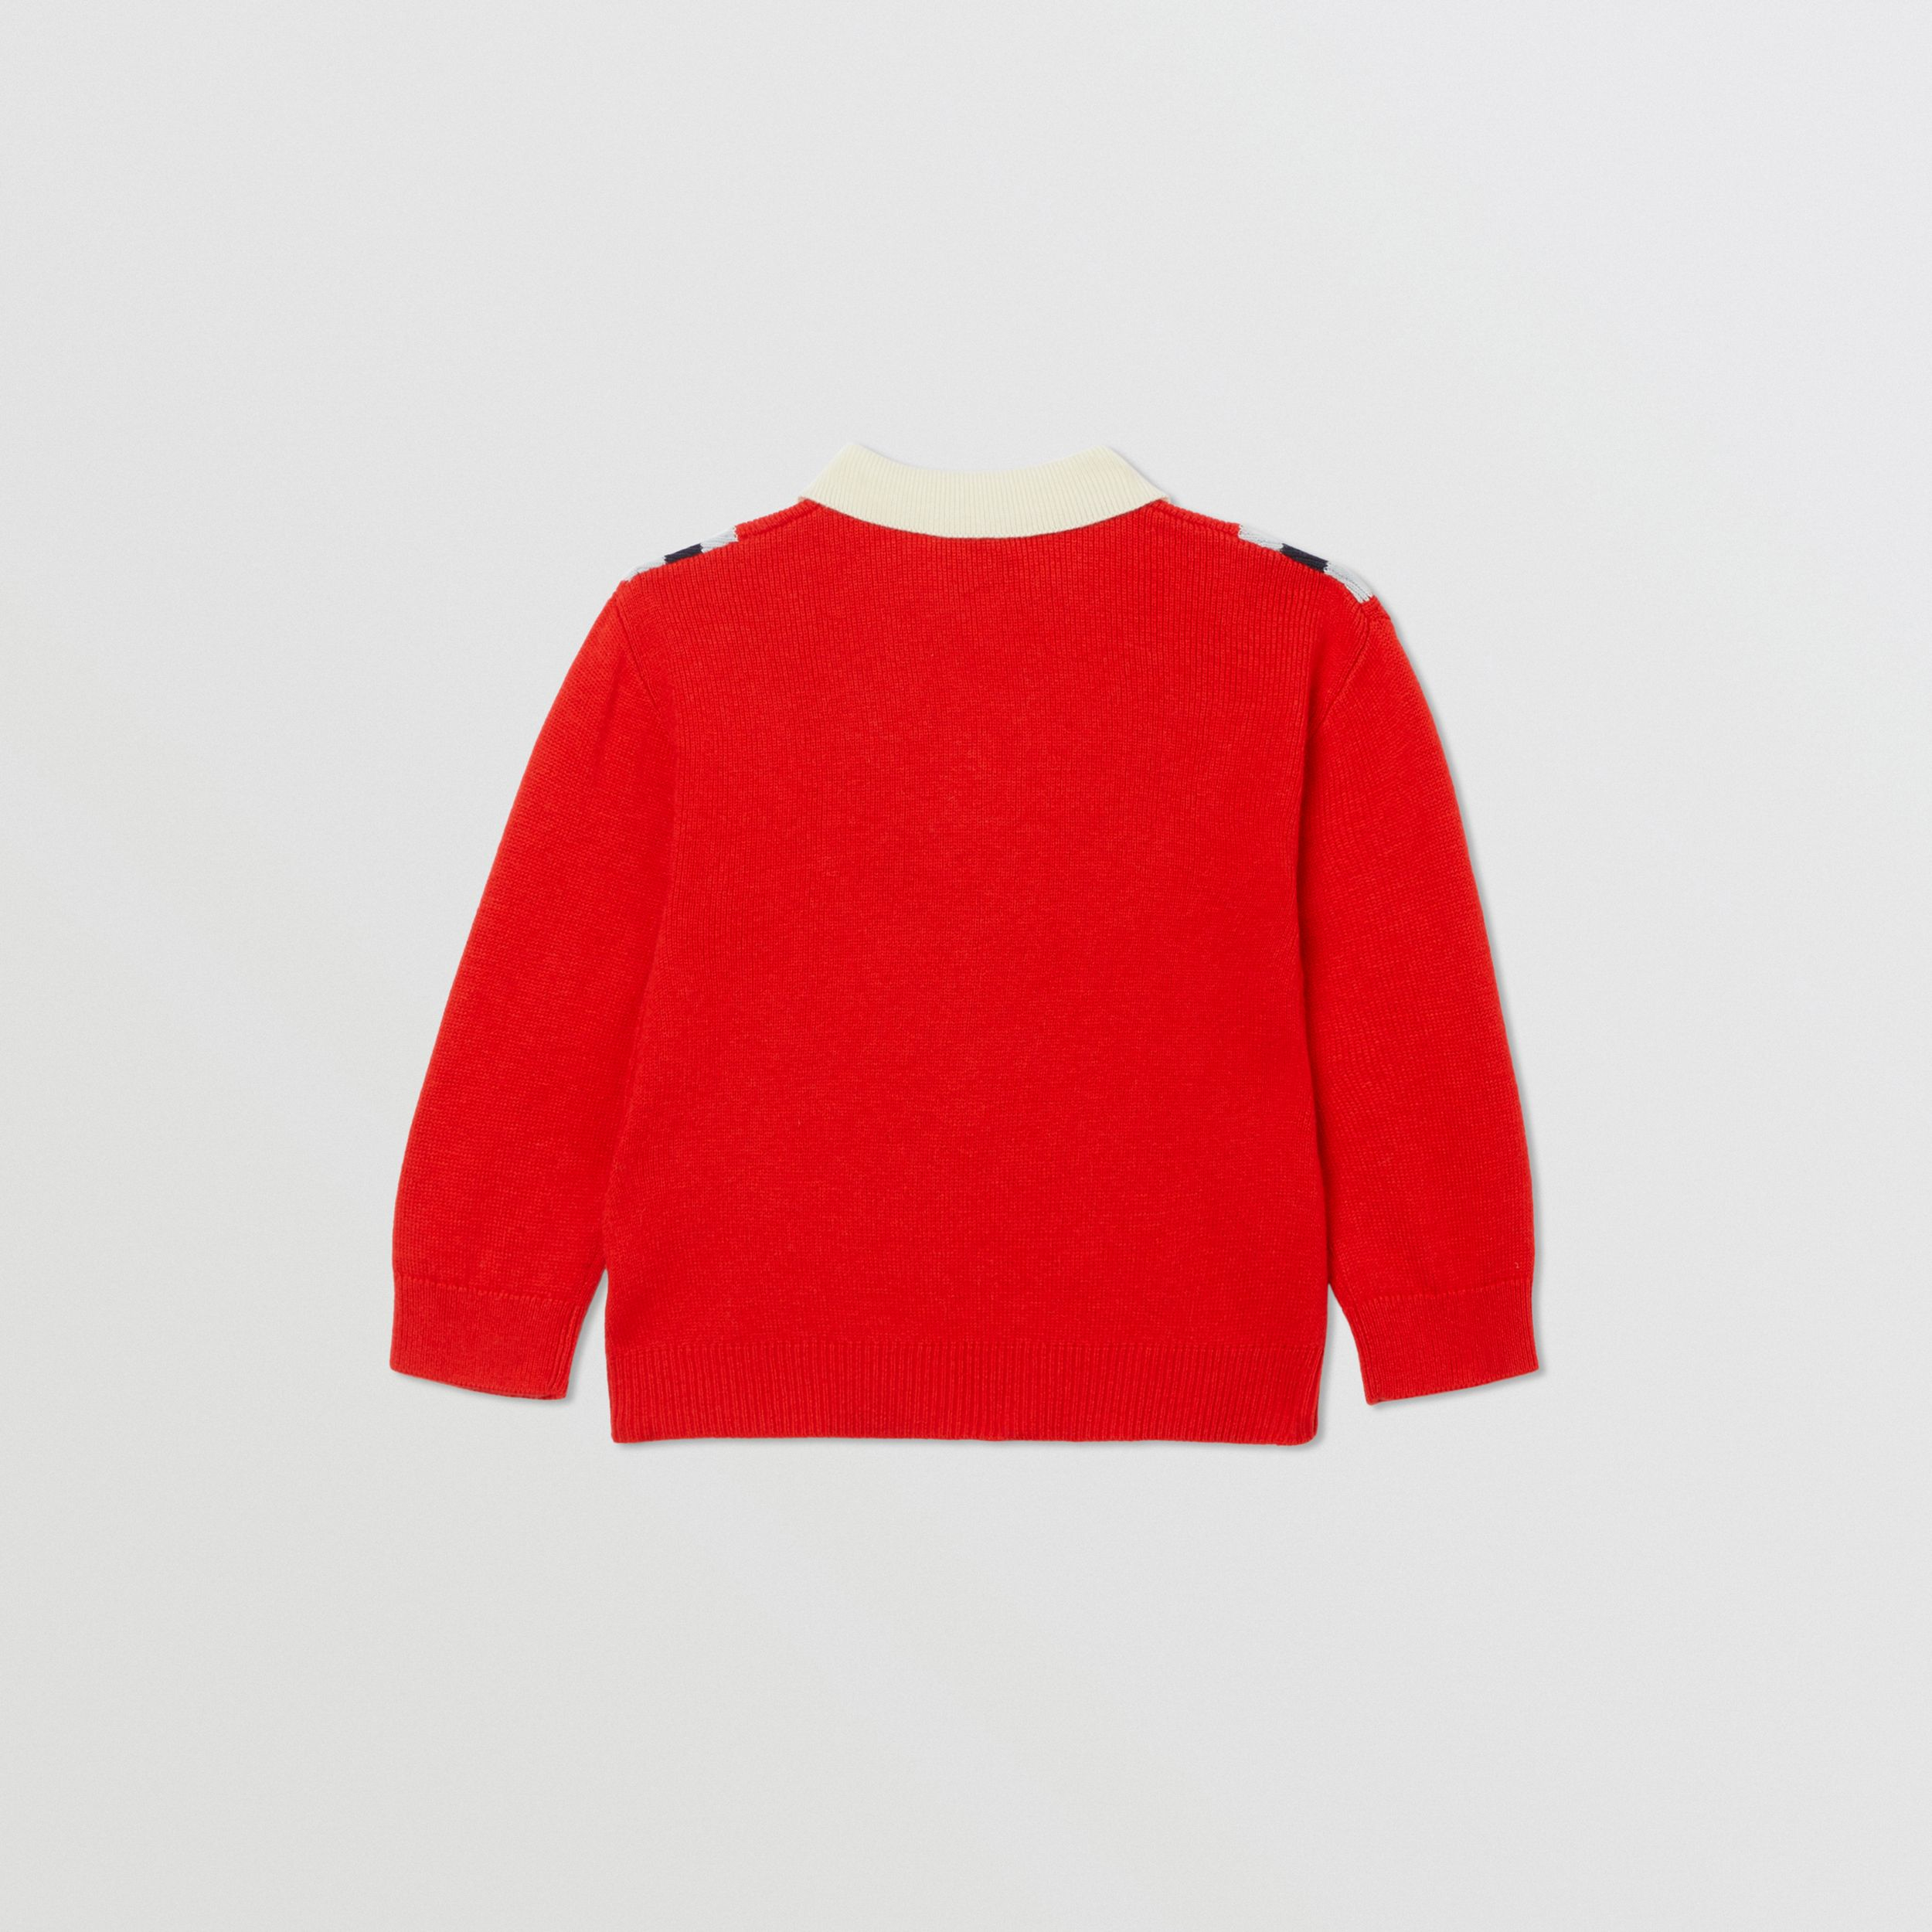 Long-sleeve Knit Cashmere Cotton Polo Shirt in Bright Red - Children | Burberry - 4